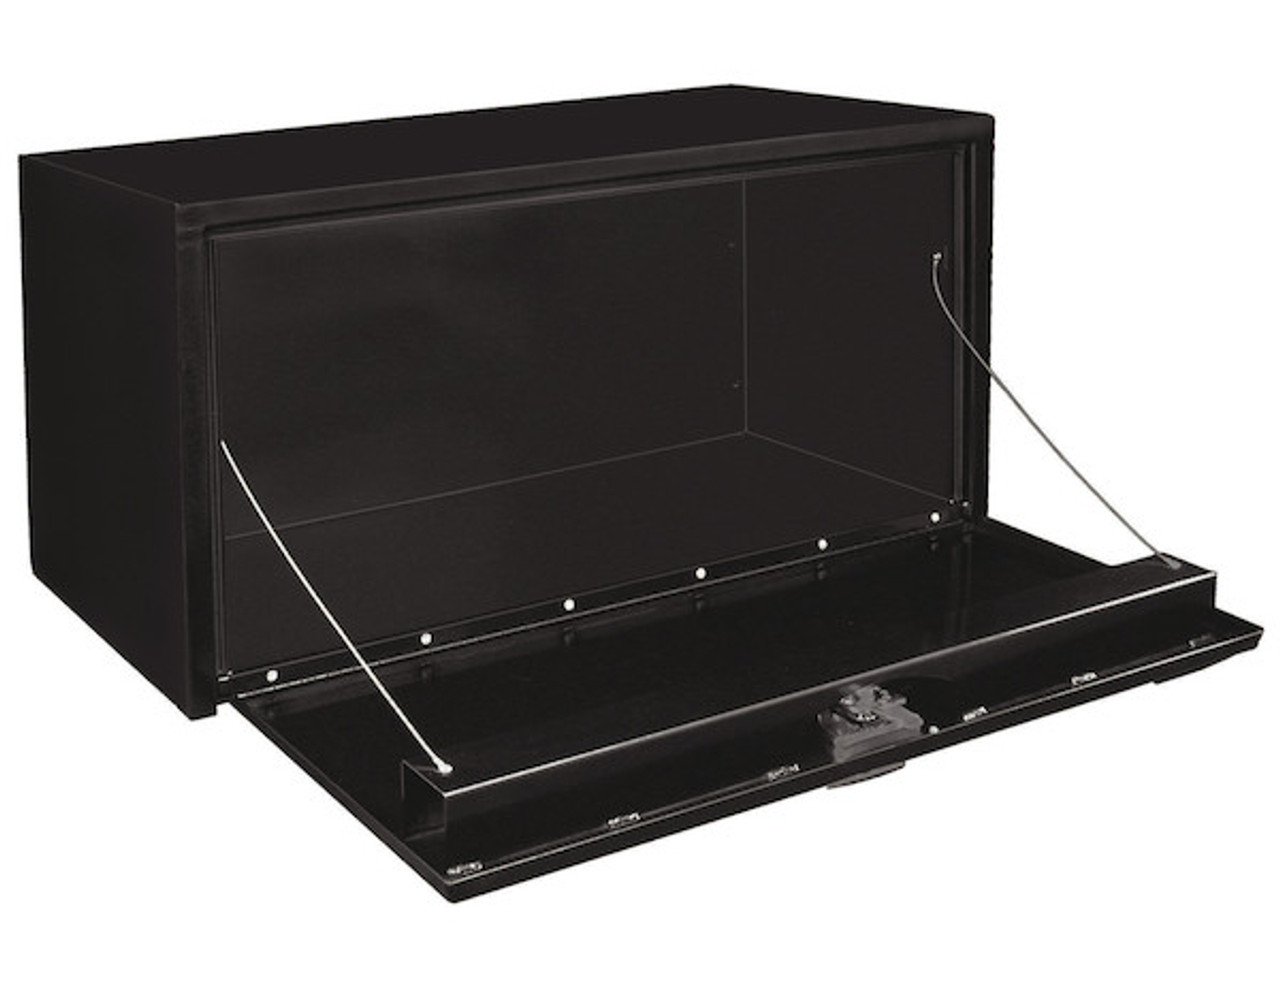 "1703322 BUYERS PRODUCTS BLACK STEEL UNDERBODY TRUCK TOOLBOX WITH T-LATCH 15""HX13""DX24""W"